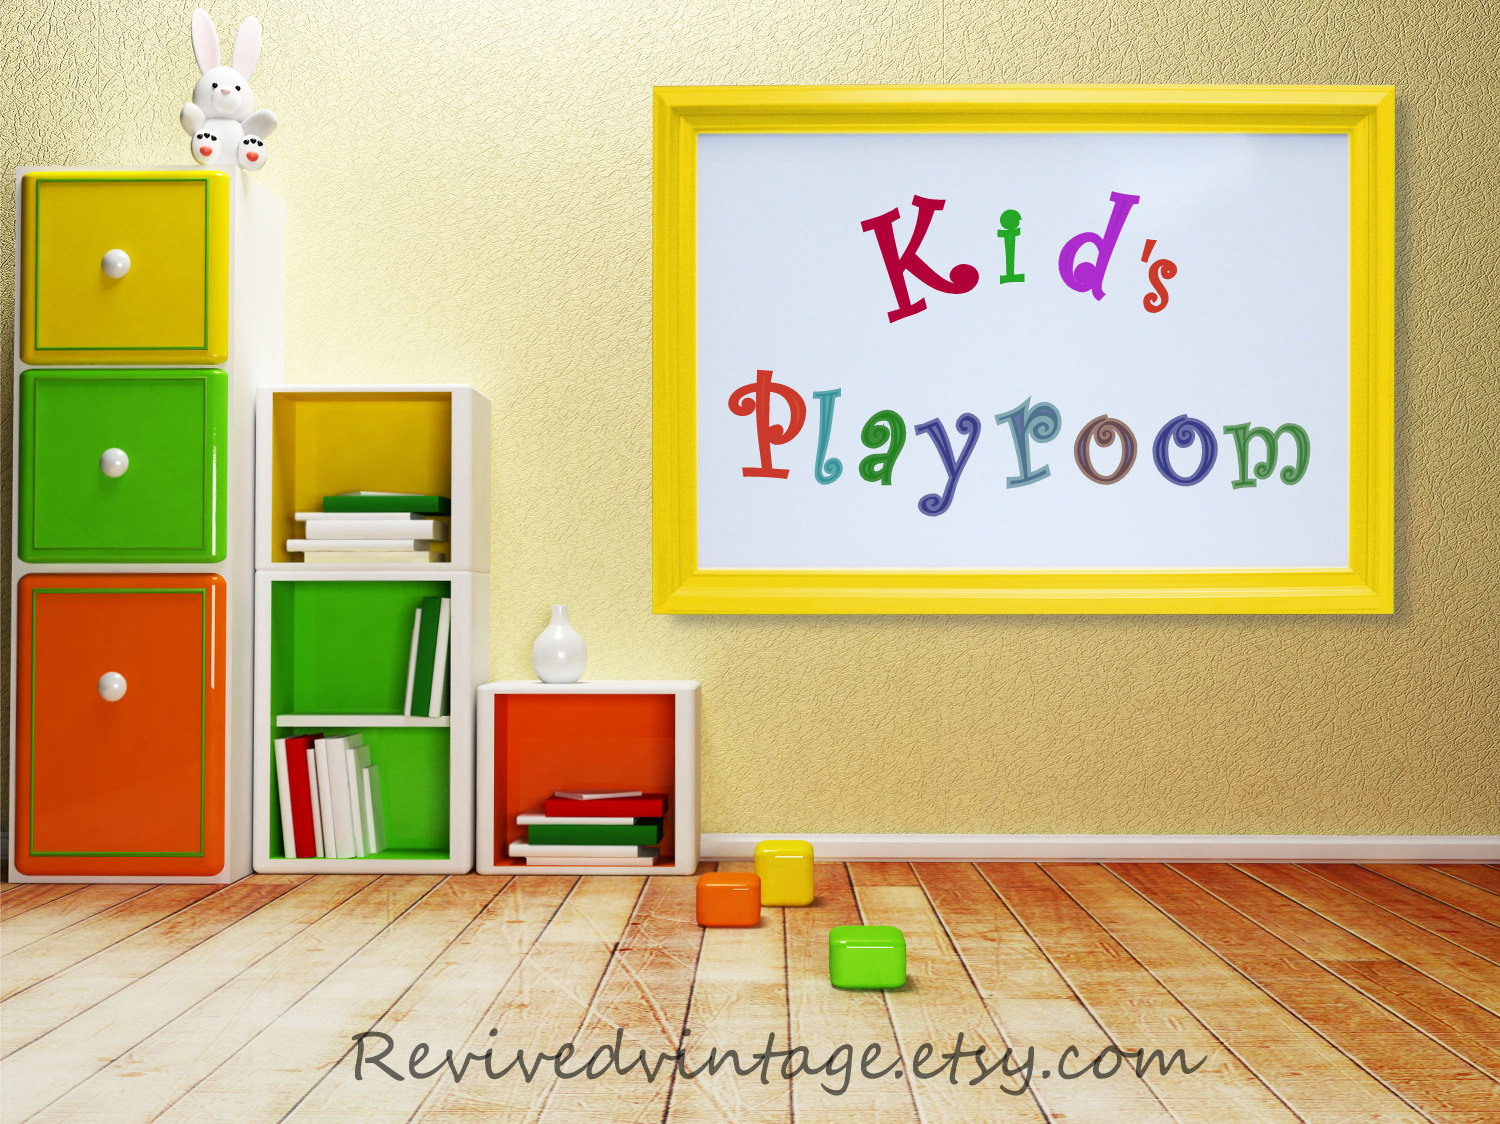 KIDS PLAYROOM DECORATION Wall Art Decor Large Whiteboard